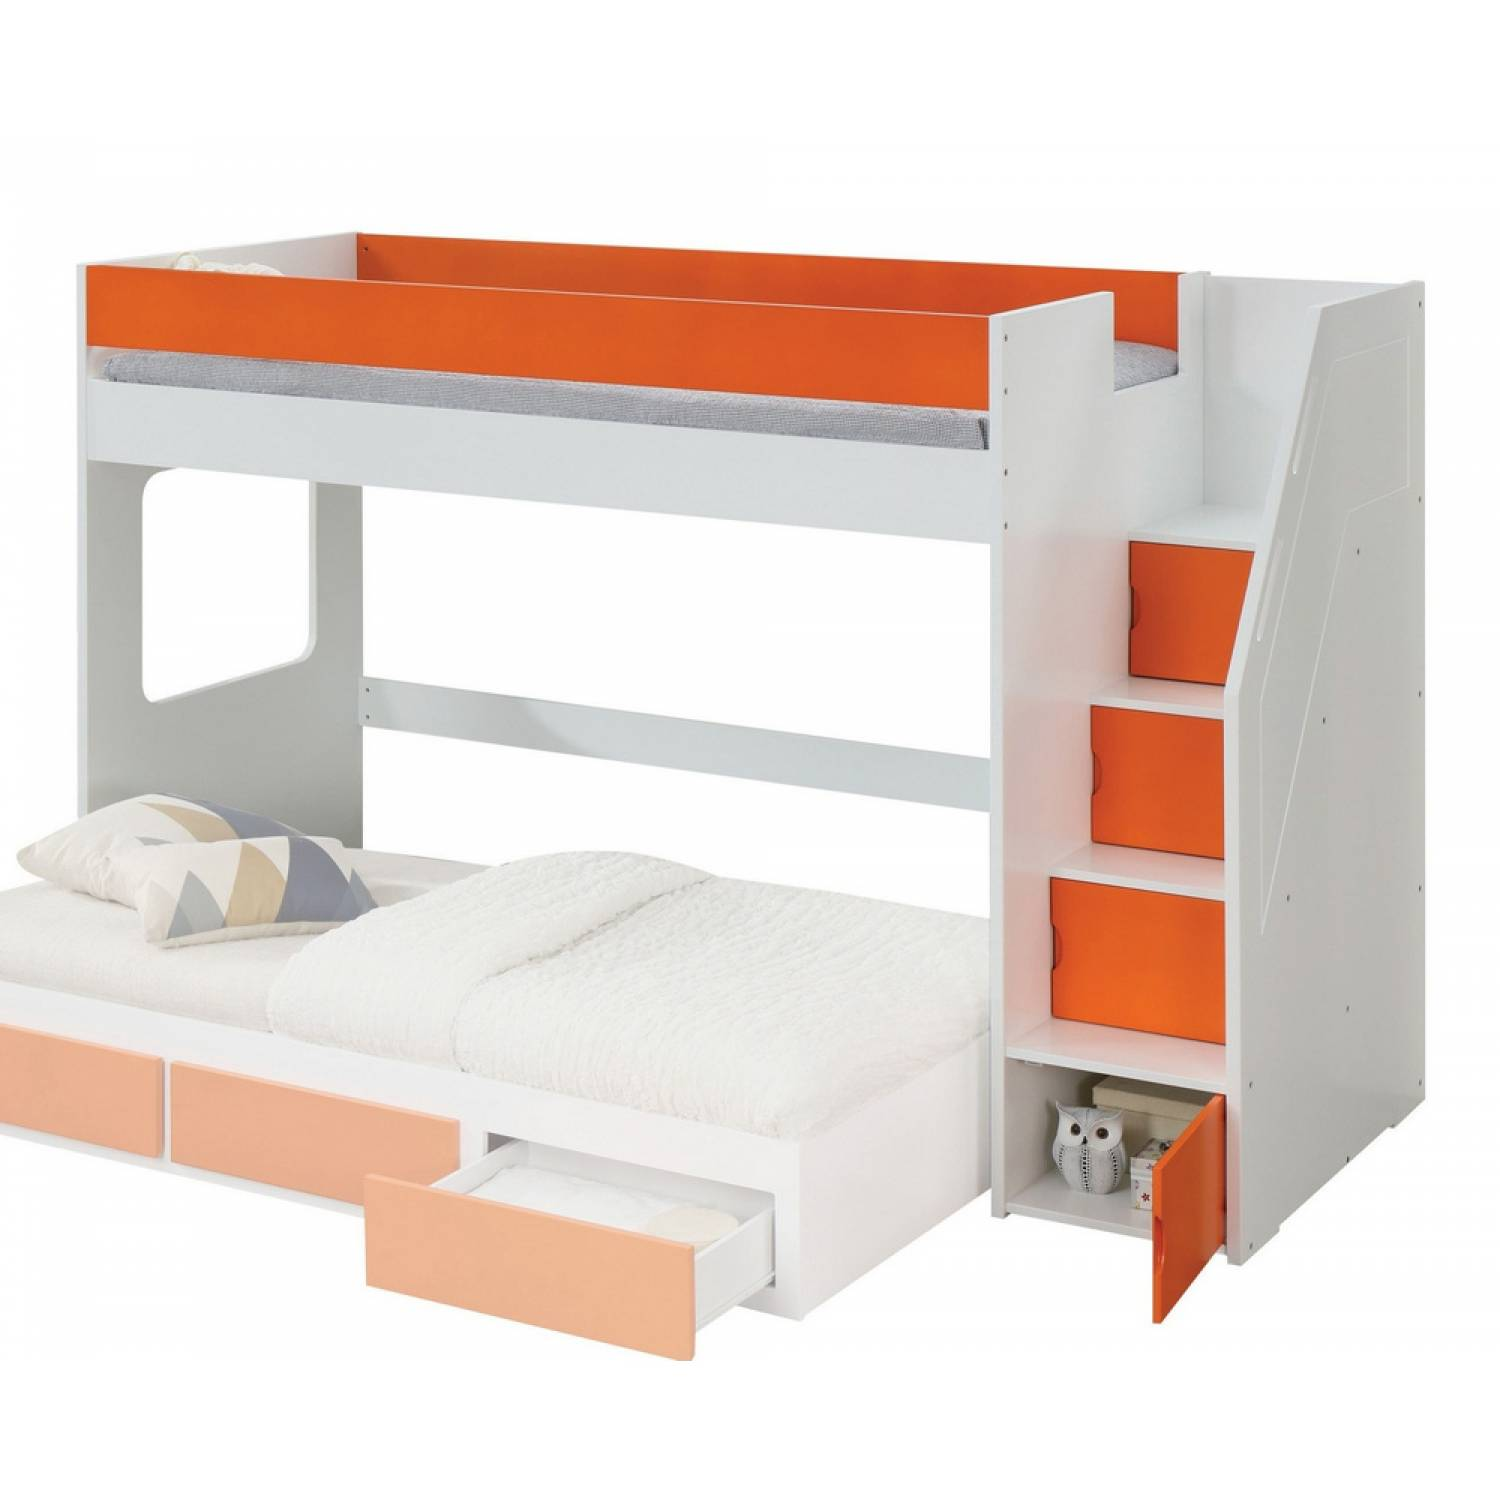 Image of: 37460 Lawson White Orange Wood Twin Loft Bed With Storage Ladder